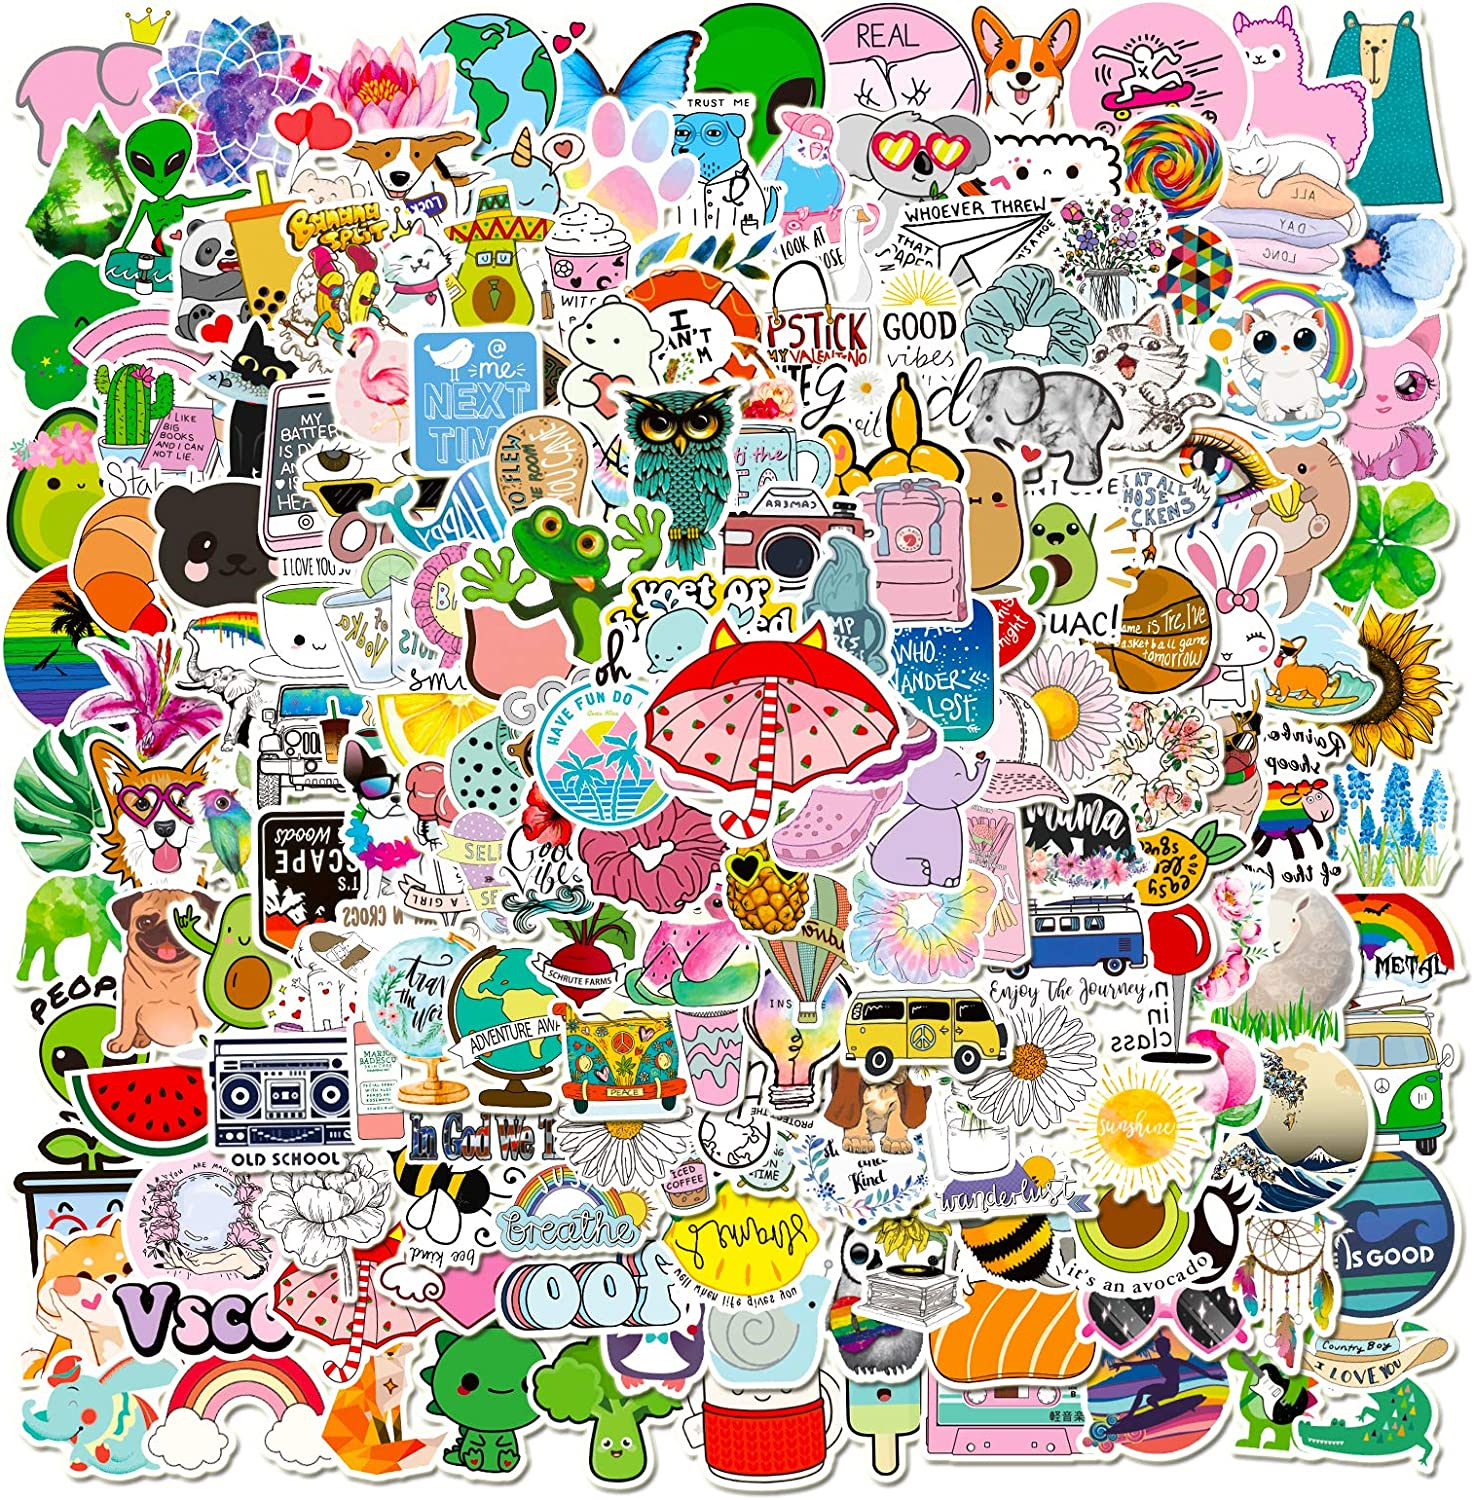 200 PCS Cute Stickers Pack, Vinyl Waterproof Stickers for Laptop,Skateboard,Water Bottles,Computer,Phone,Guitar,VSCO Stickers for Adult, Perfect for Gift